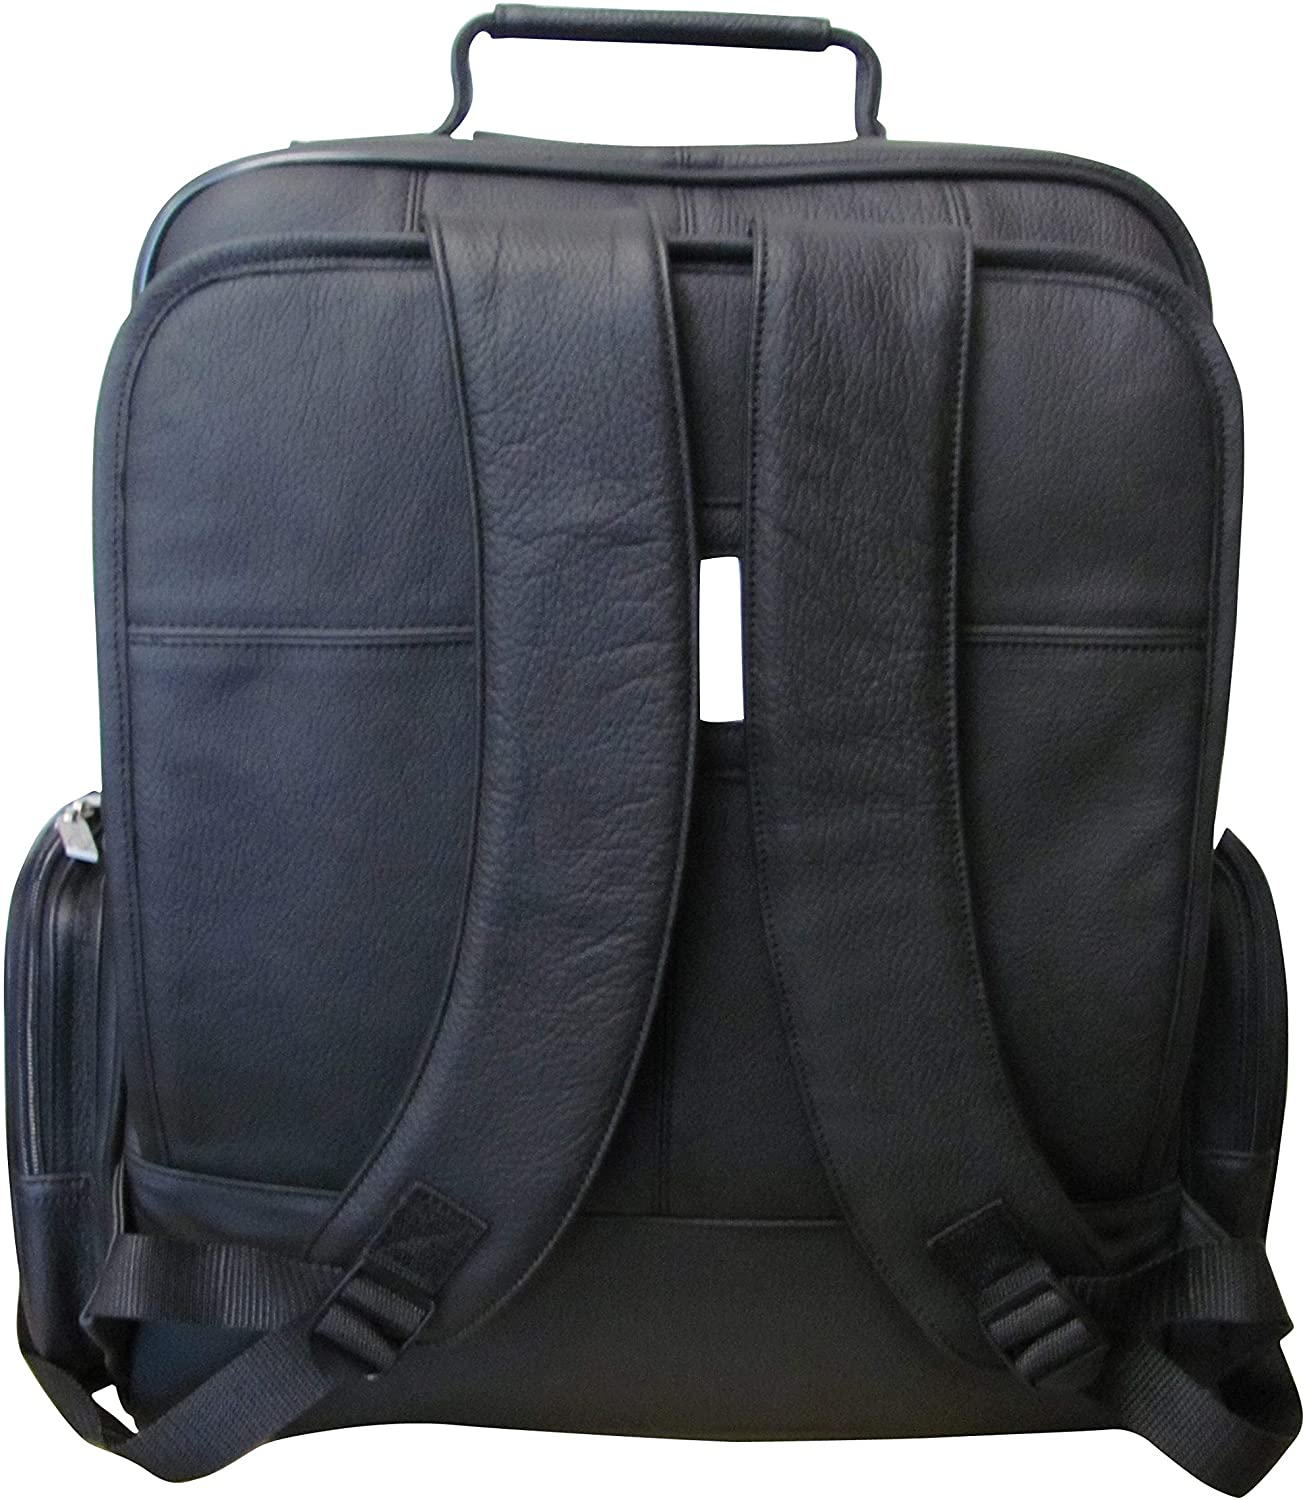 CEO Black Leather Backpack Solid Compartment Adjustable Strap Lined